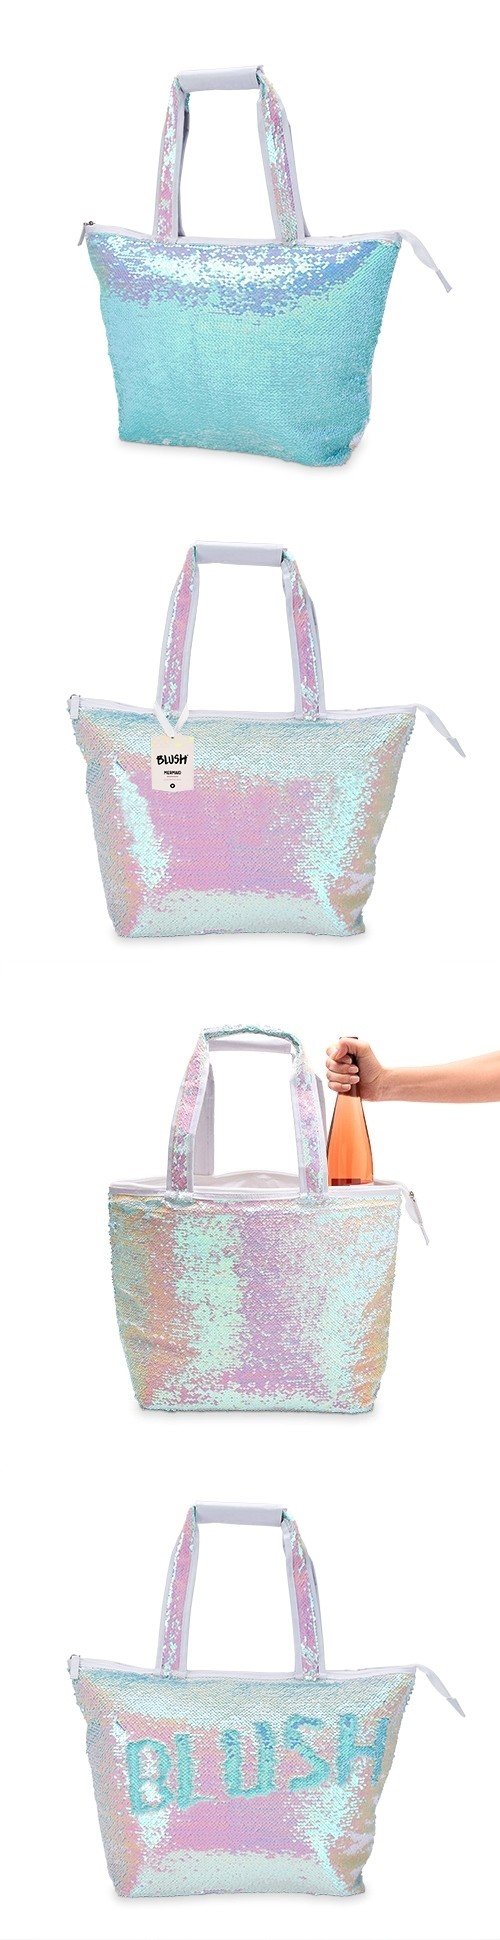 Mermaid Sequin Iridescent Cooler Tote by Blush